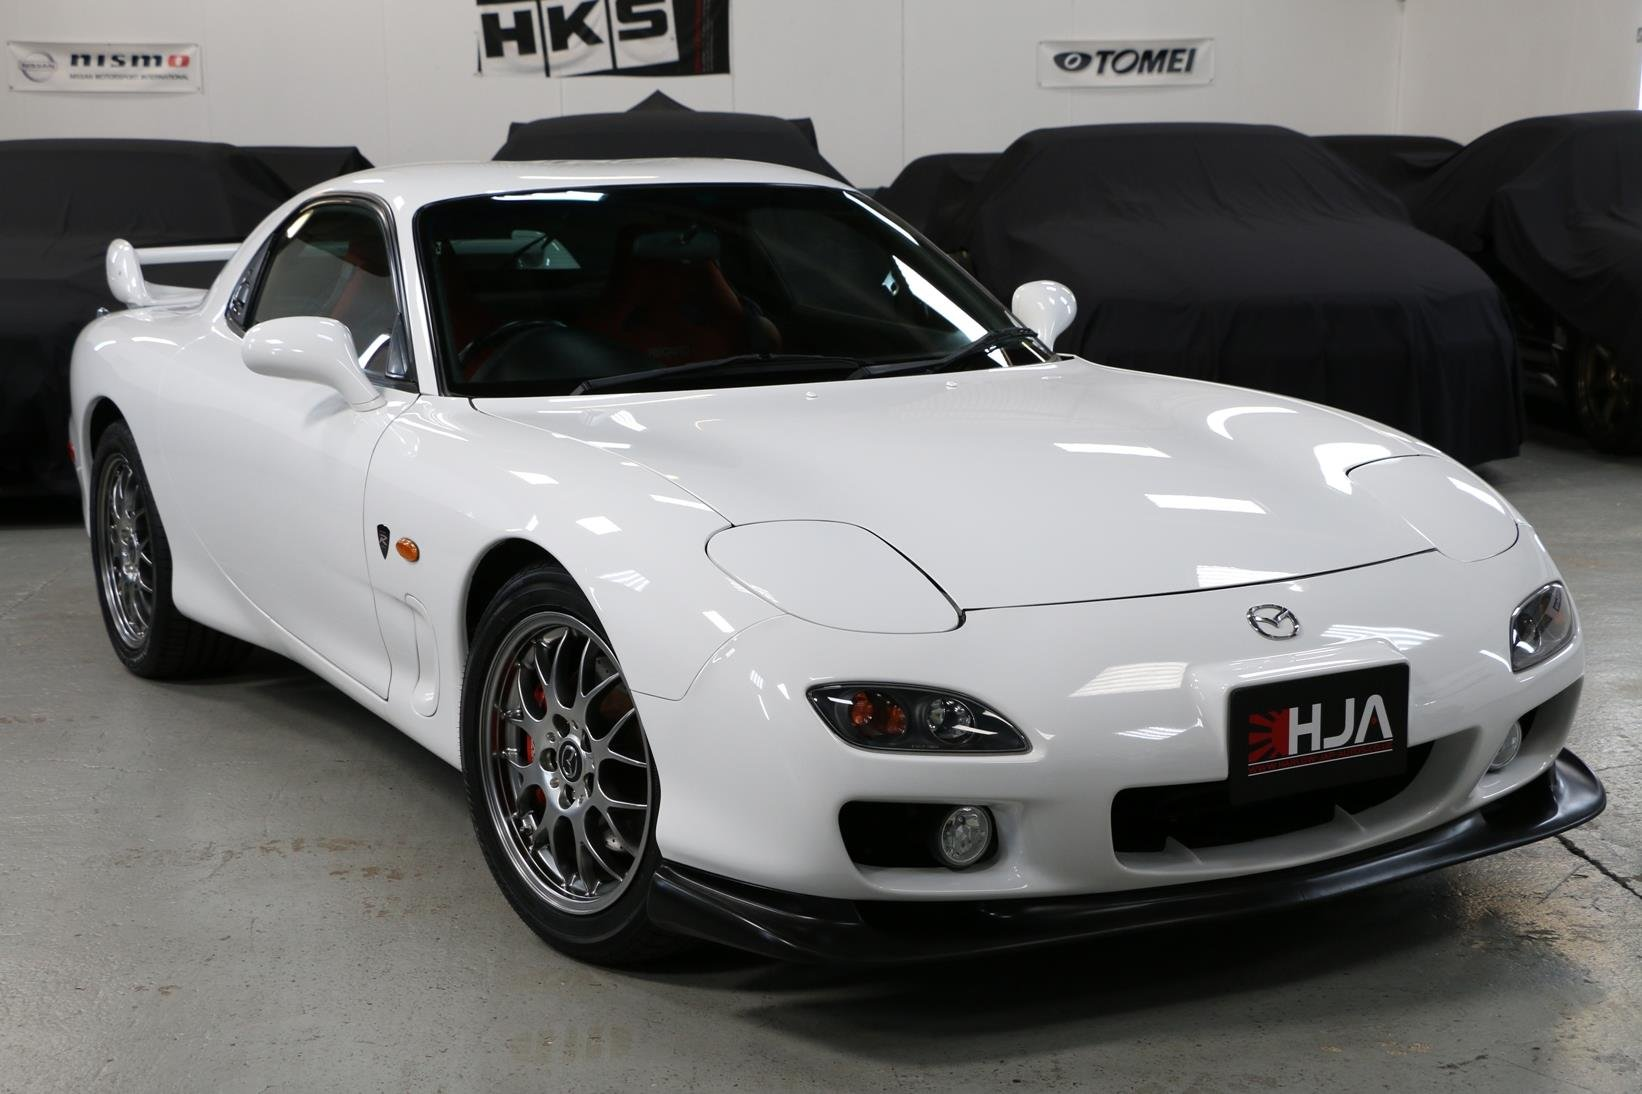 2003 Mazda RX-7 for sale #150225 | Motorious